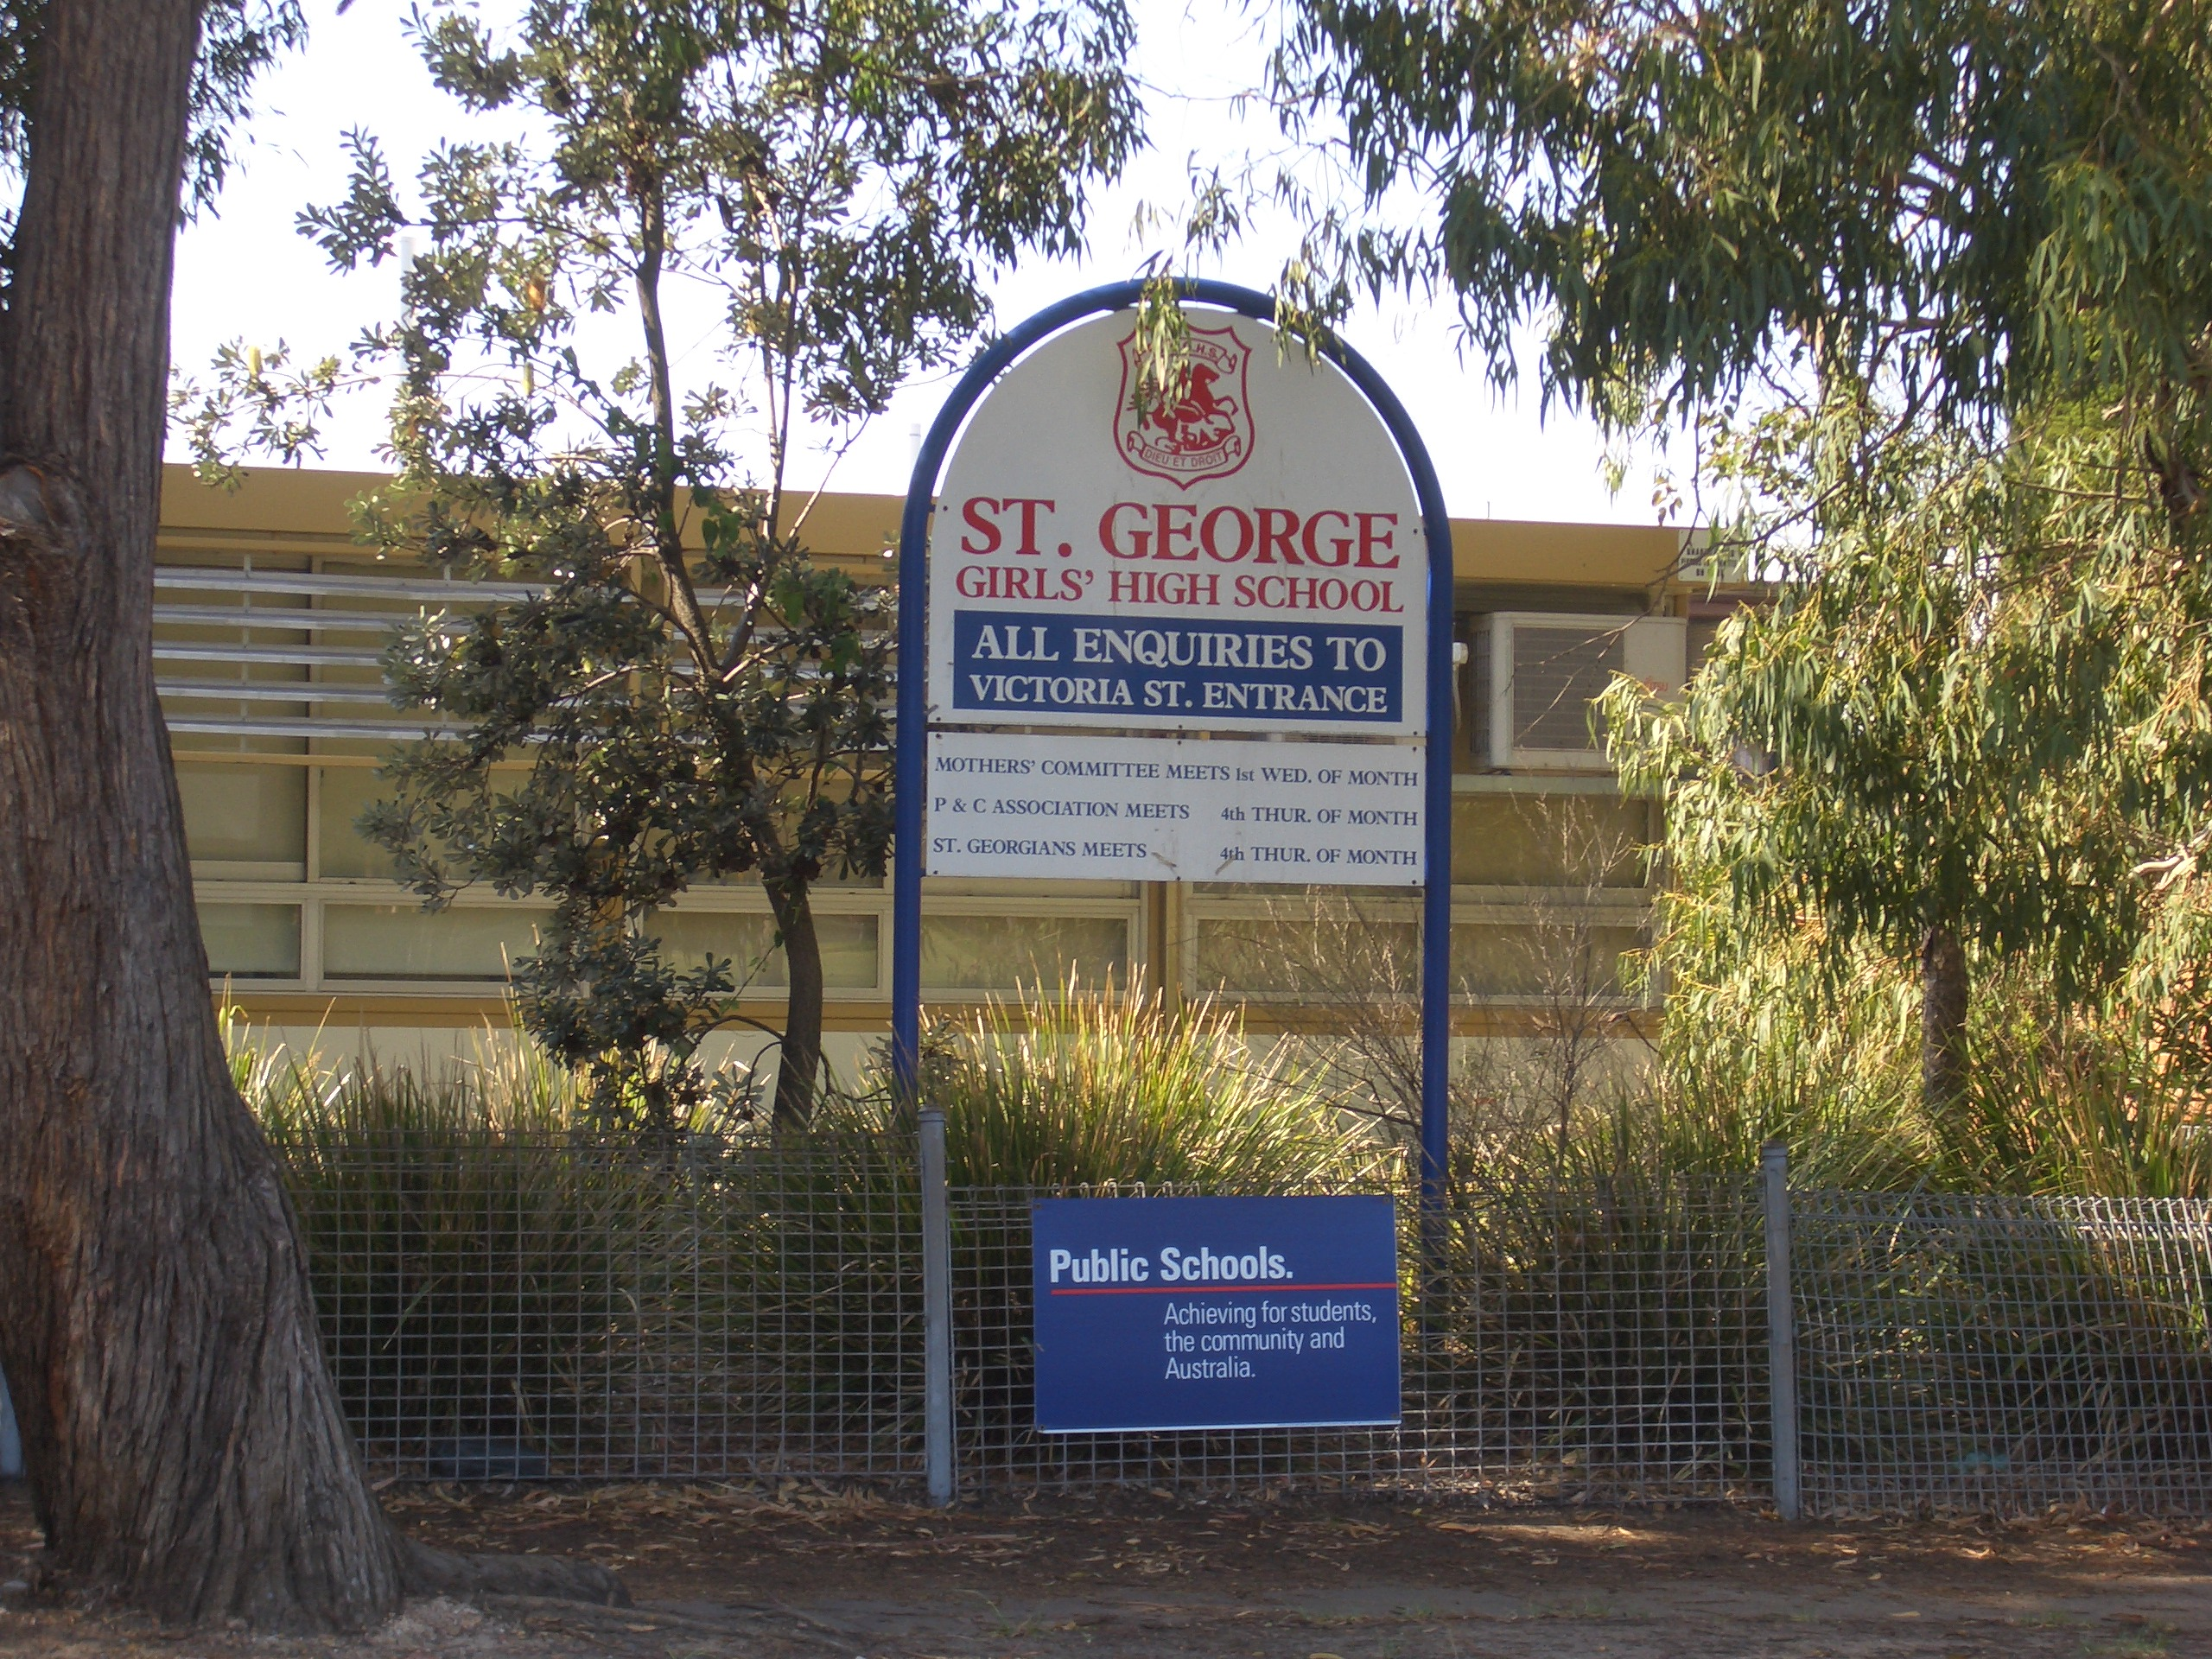 Description kogarah st george girls high school 1 jpg